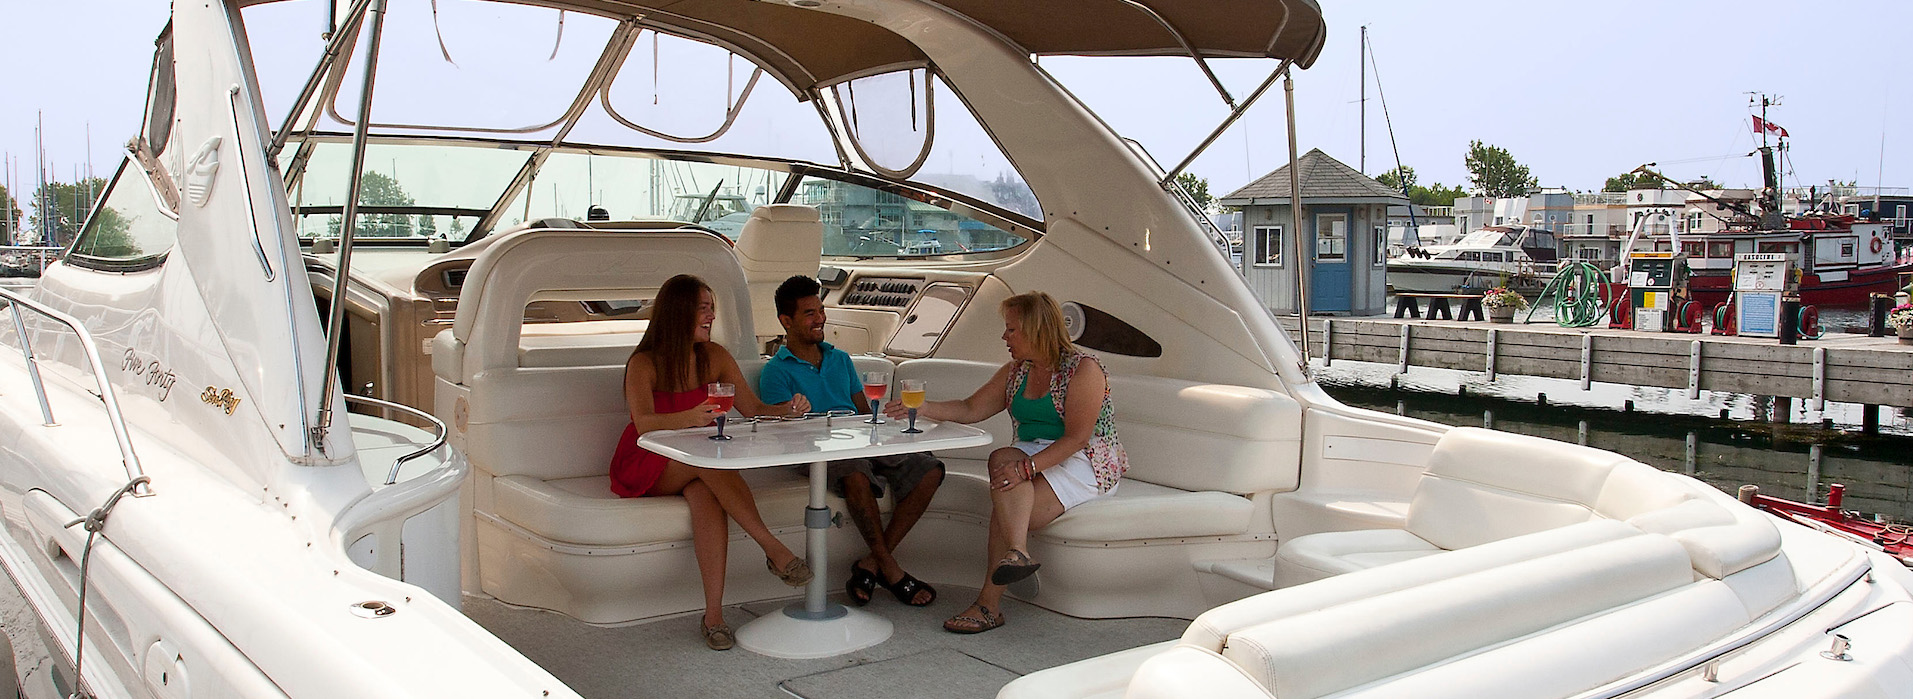 People enjoy a drink together on their boat which is docket at Bluffers Park Marina, Toronto's only full service marina.